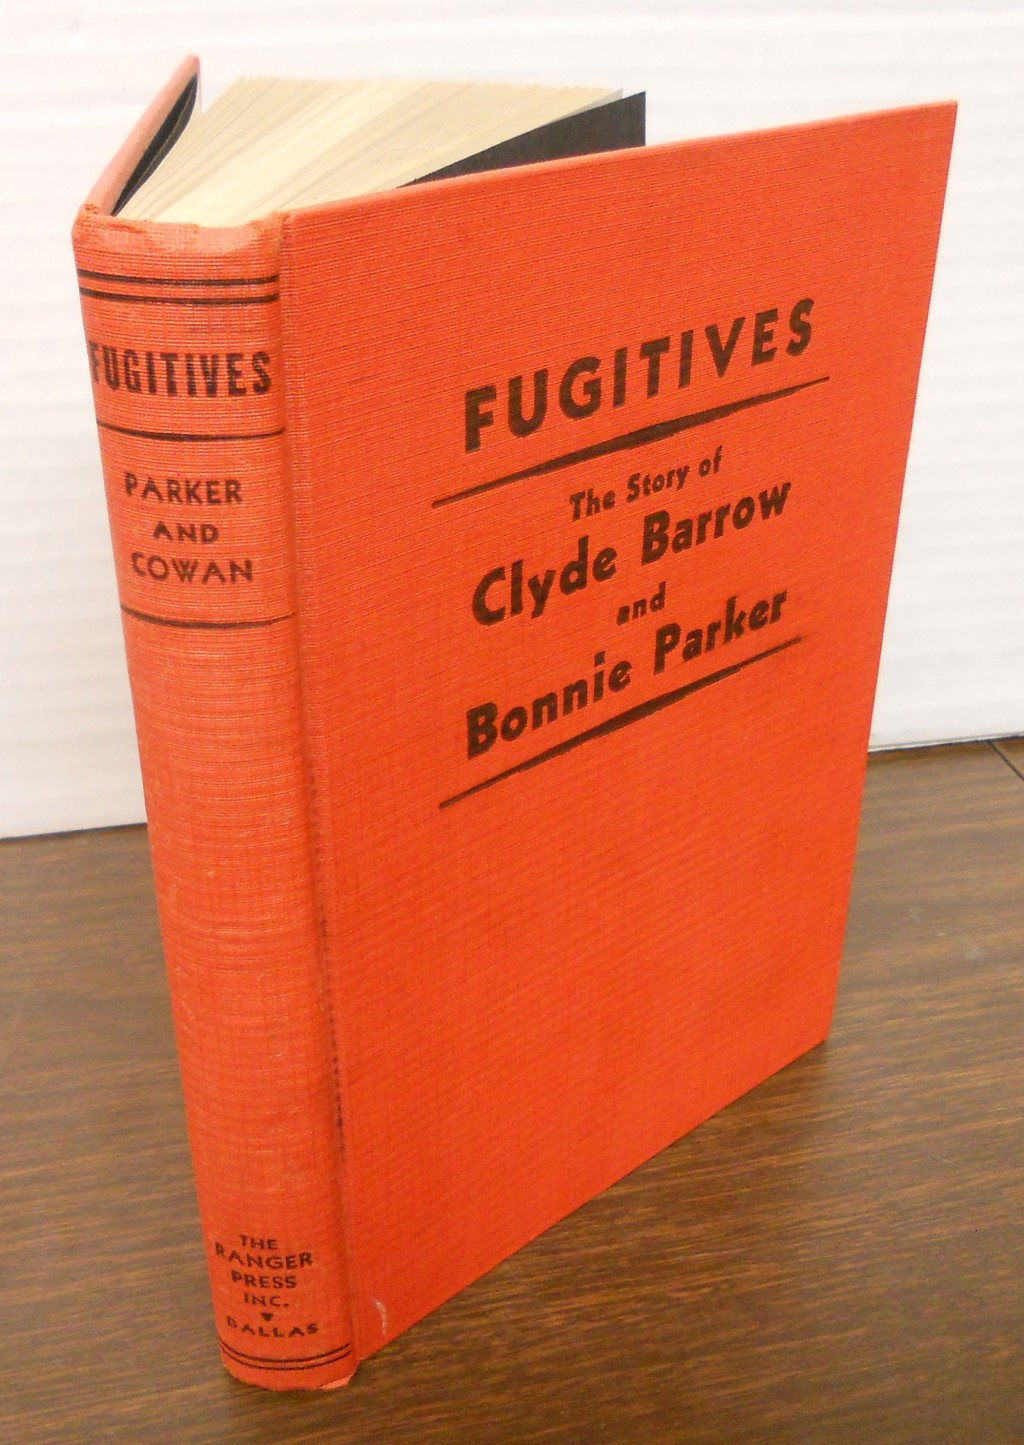 Fugitives - The Story of Clyde Barrow and Bonnie Parker